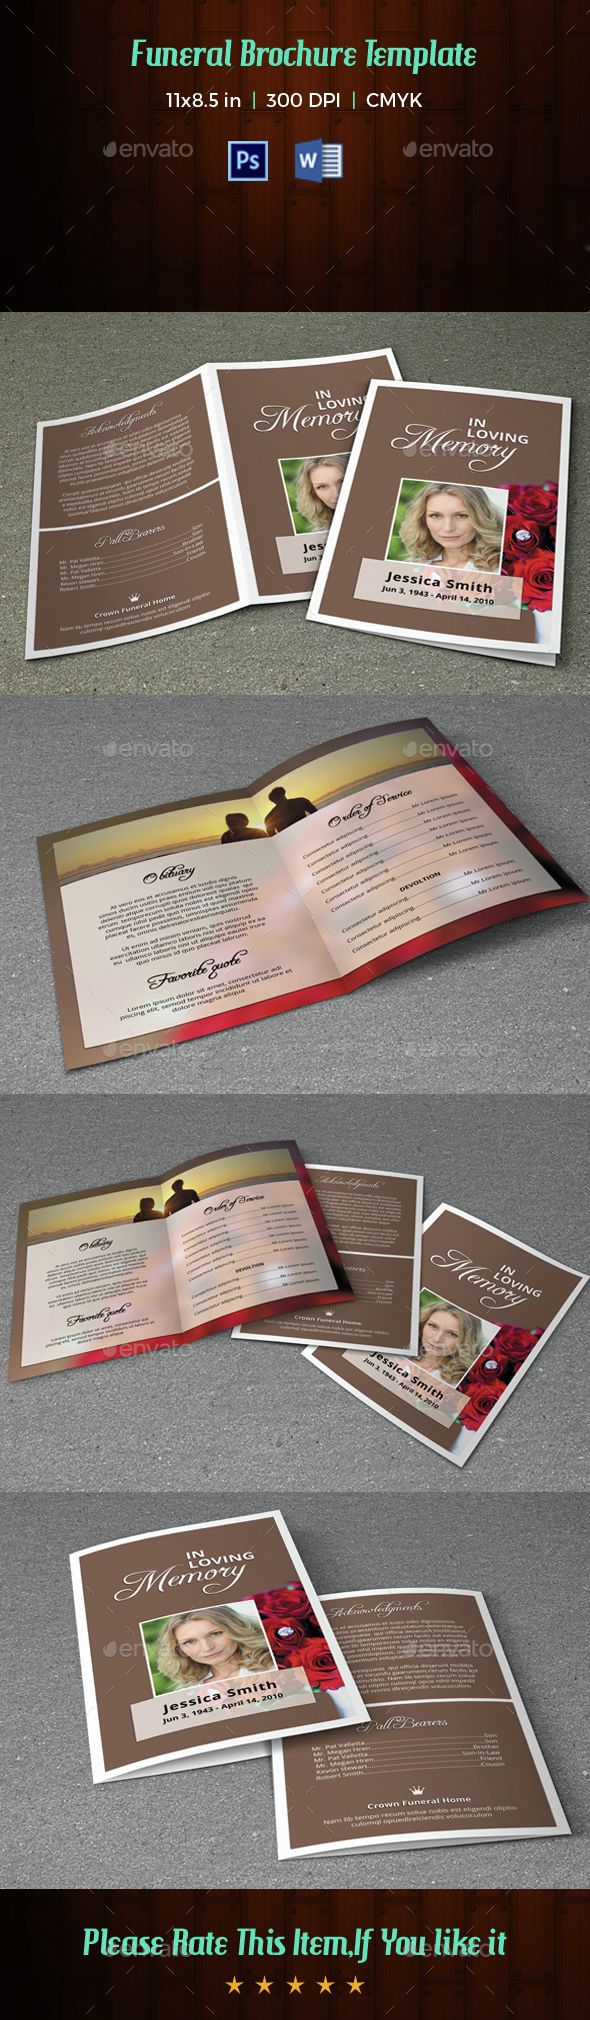 Microsoft Word Credit Reference Template%0A Funeral Program TemplateV